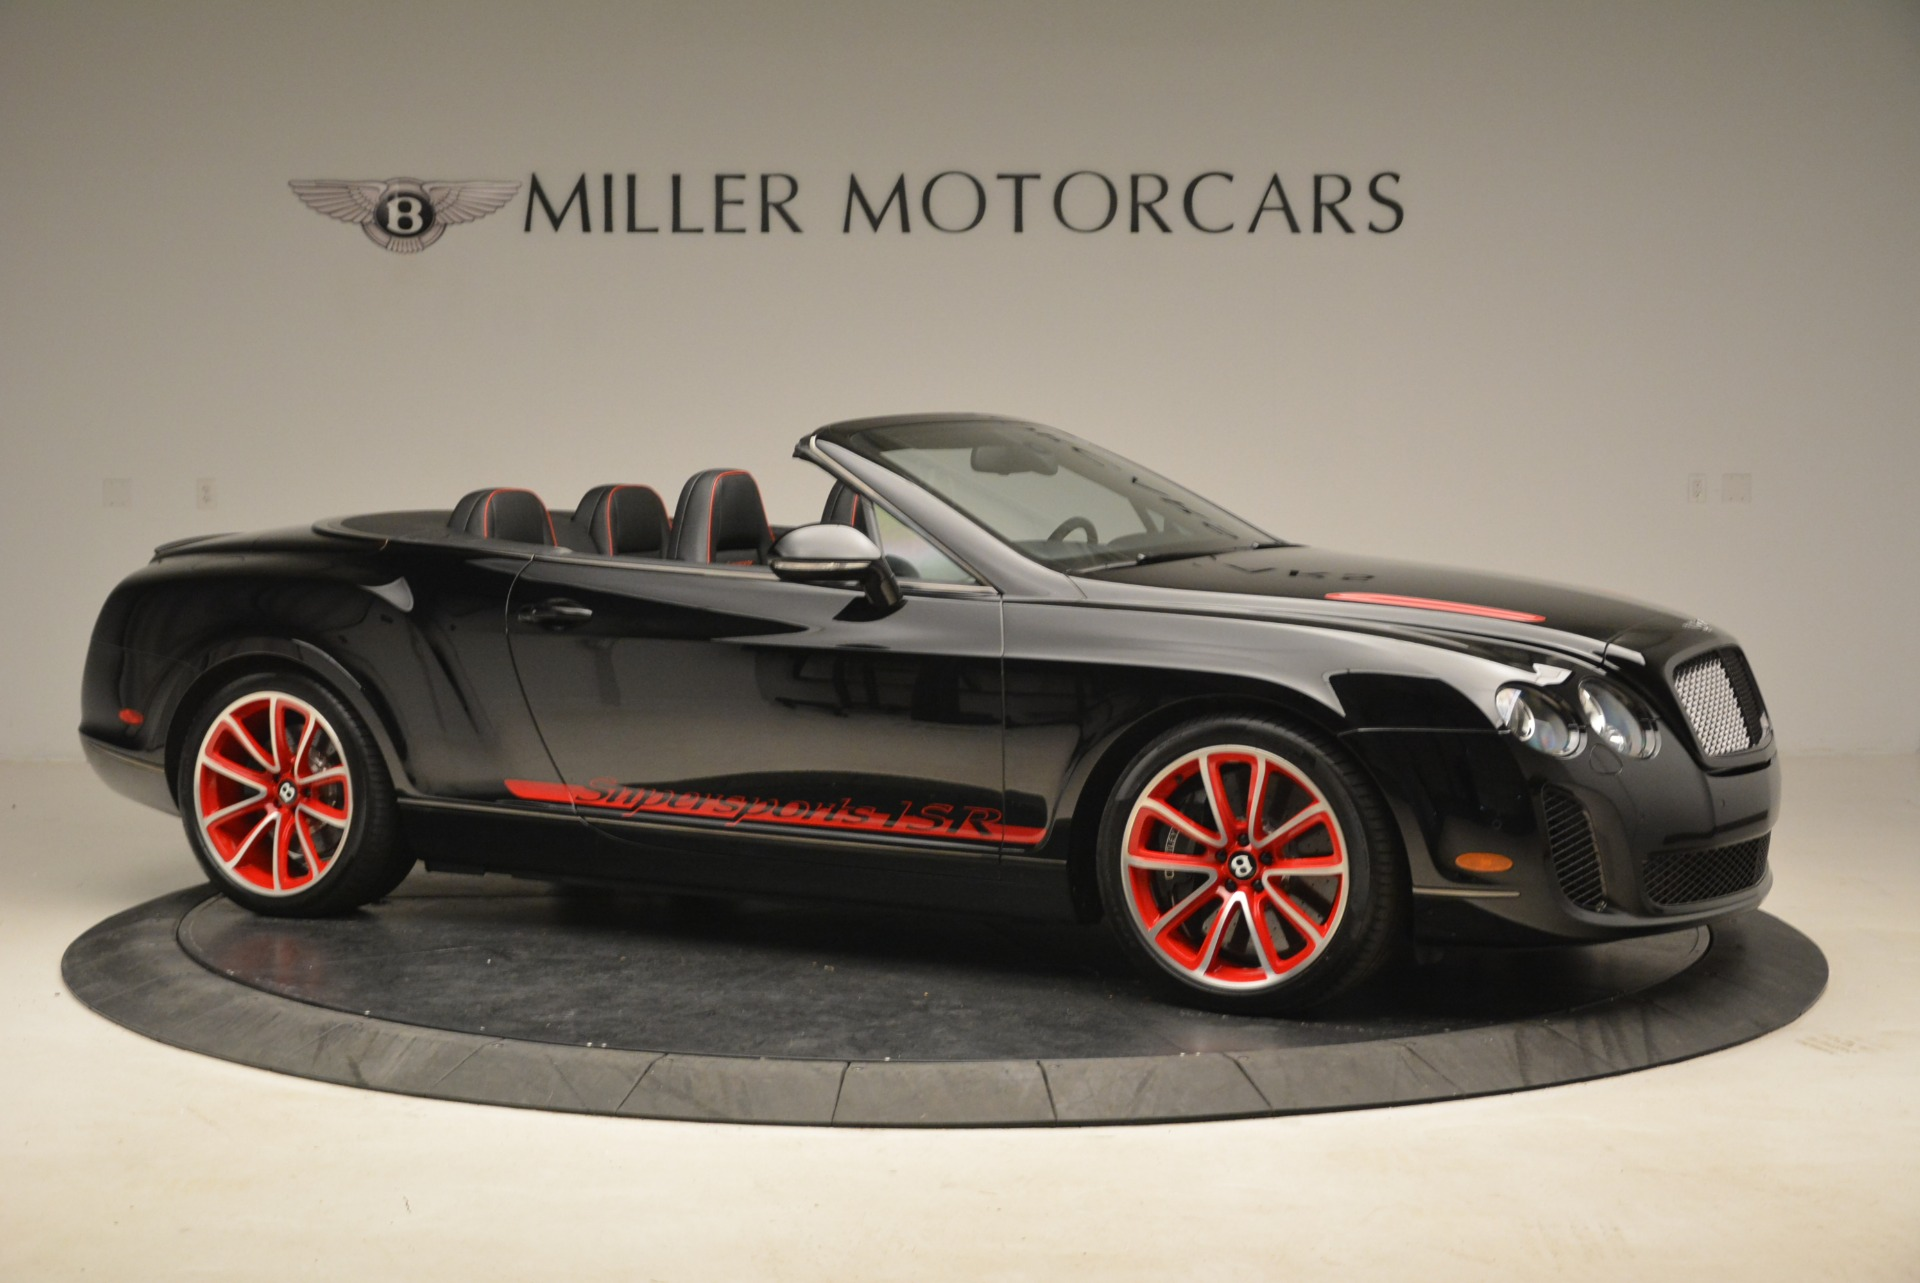 Used 2013 Bentley Continental GT Supersports Convertible ISR For Sale In Greenwich, CT 2151_p10